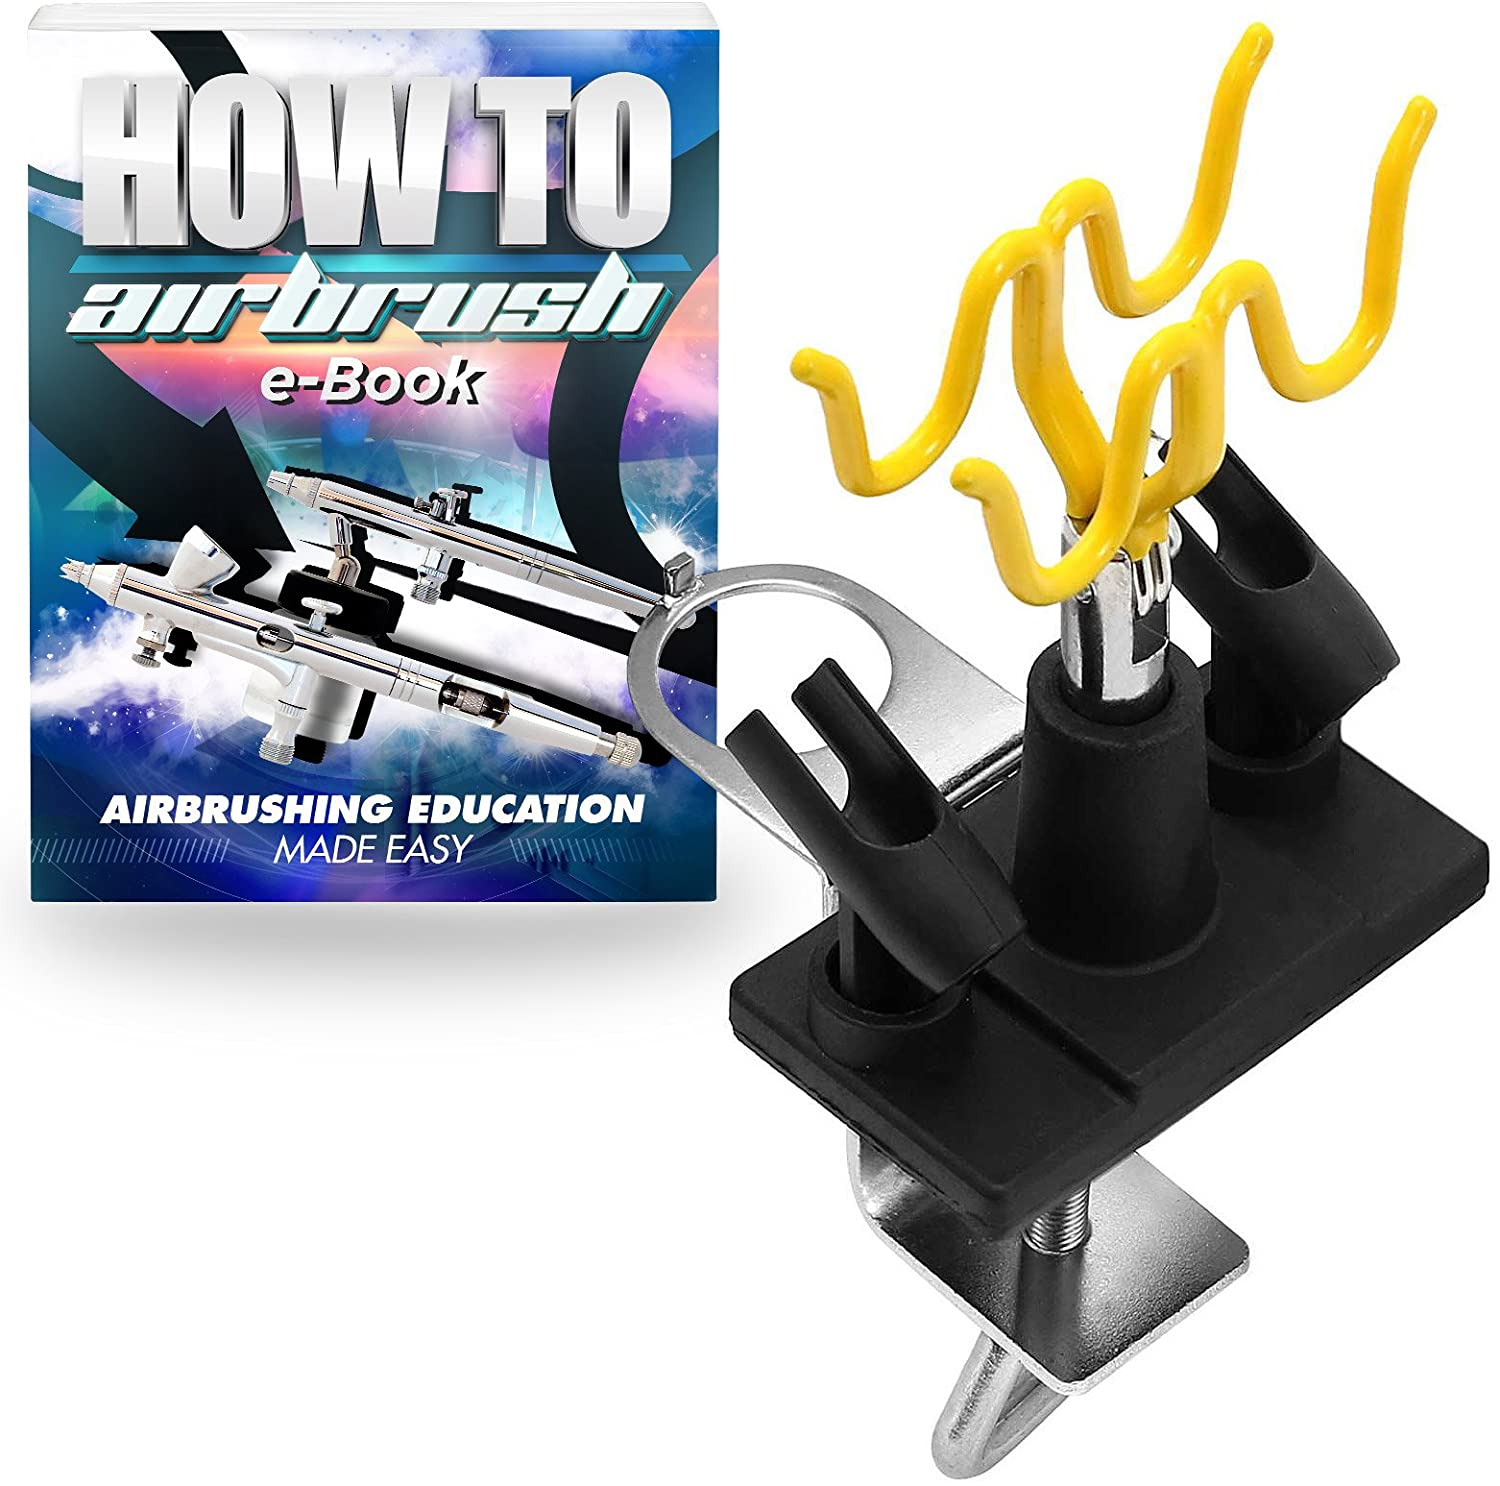 PointZero Clamp-on Stand Table-Mount Four Airbrush Holder Station